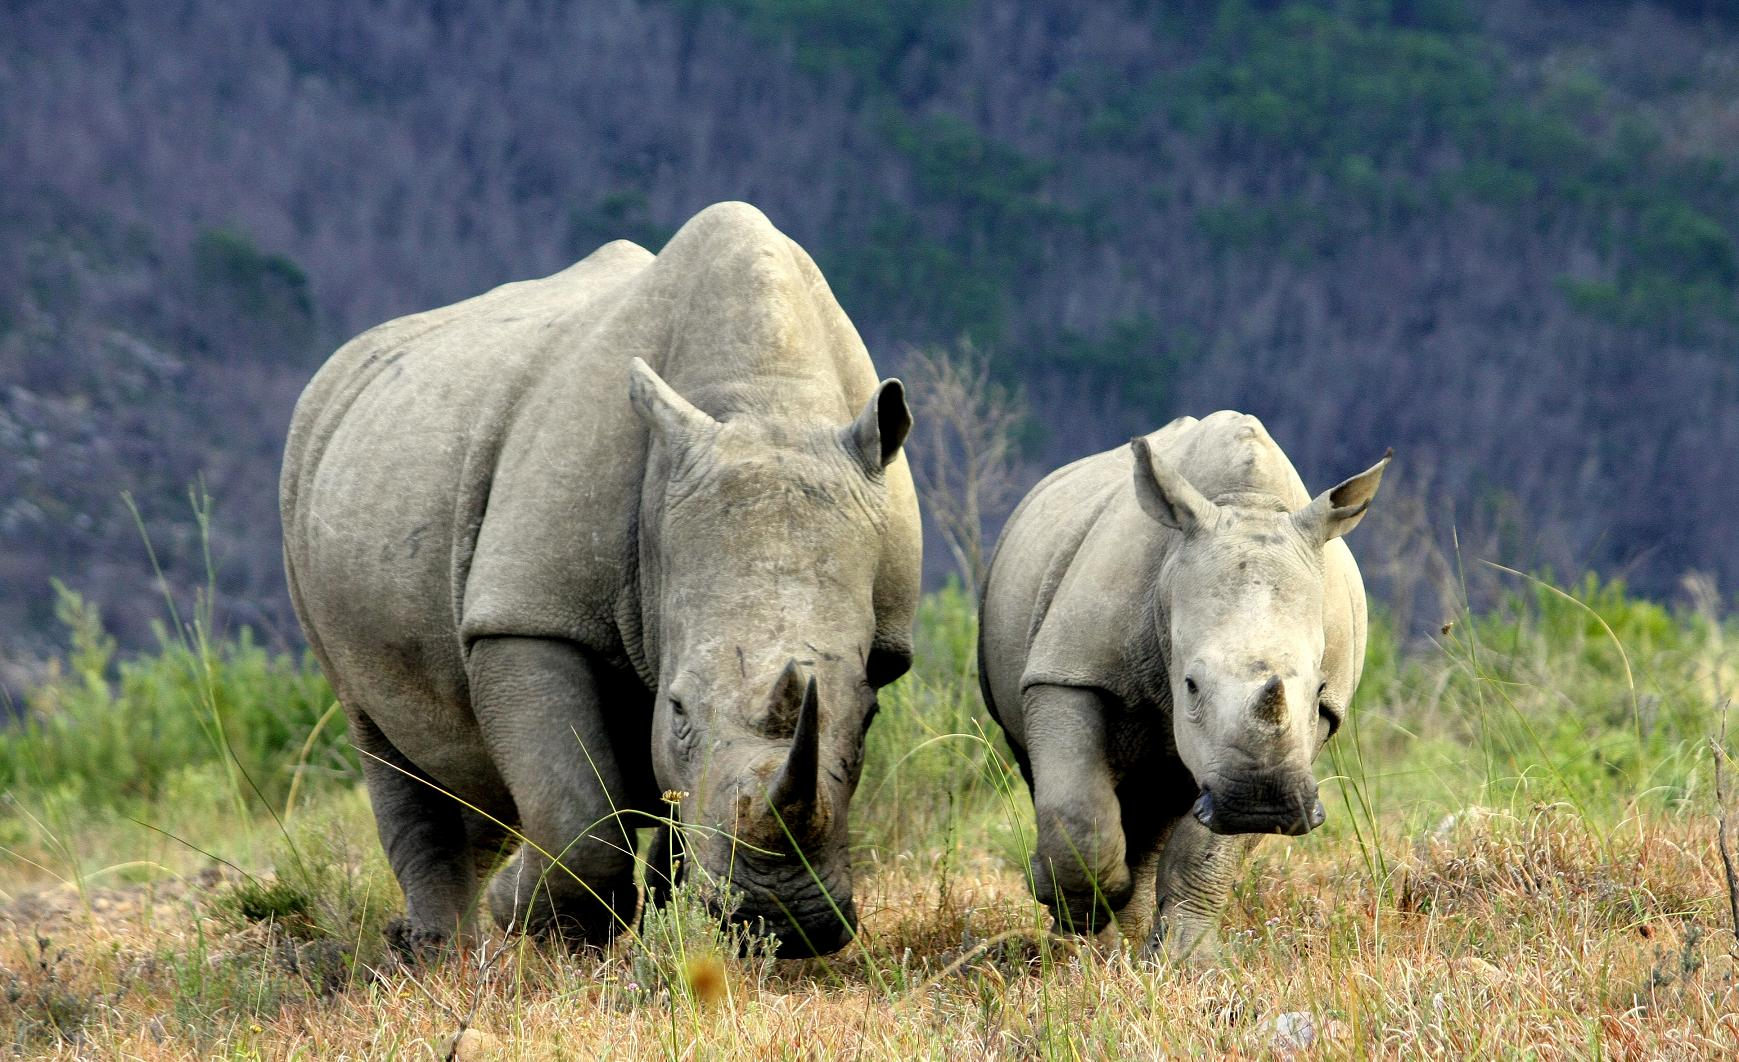 A magnificent rhino and its offspring charge through the plains of Africa